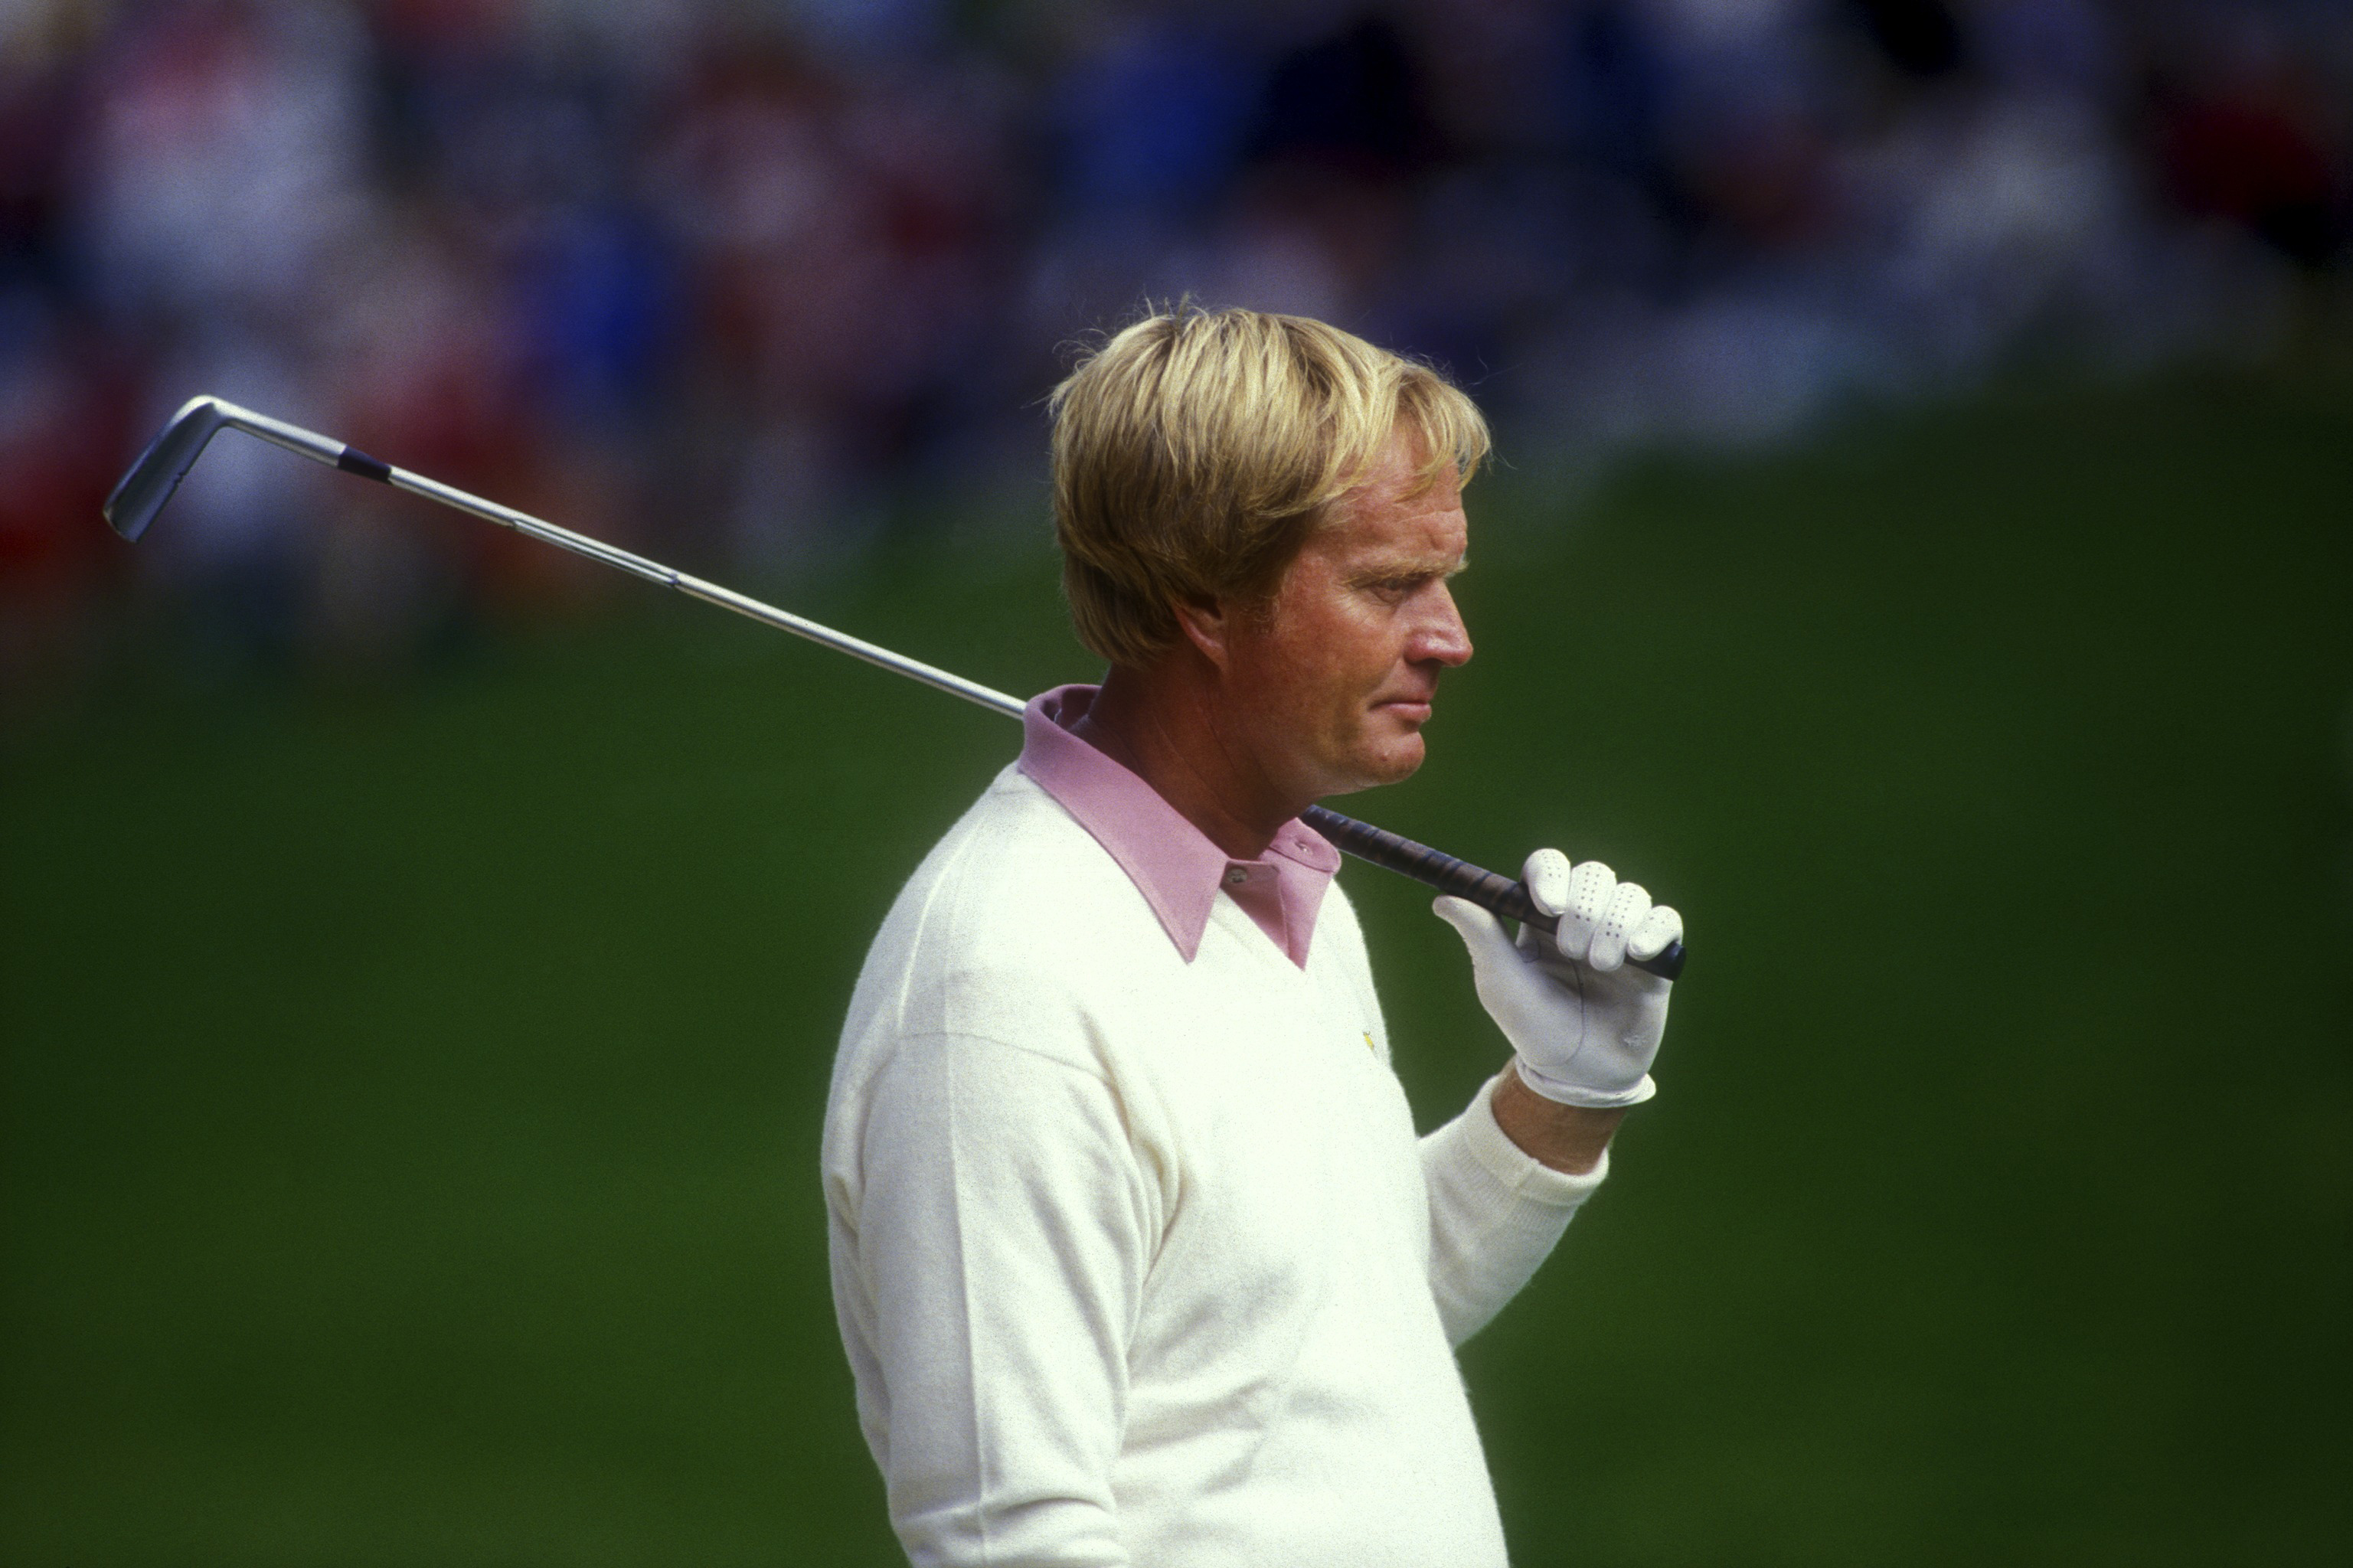 Jack Nicklaus on No. 18 during 1987 U.S. Open at the Olympic Club in San Francisco.